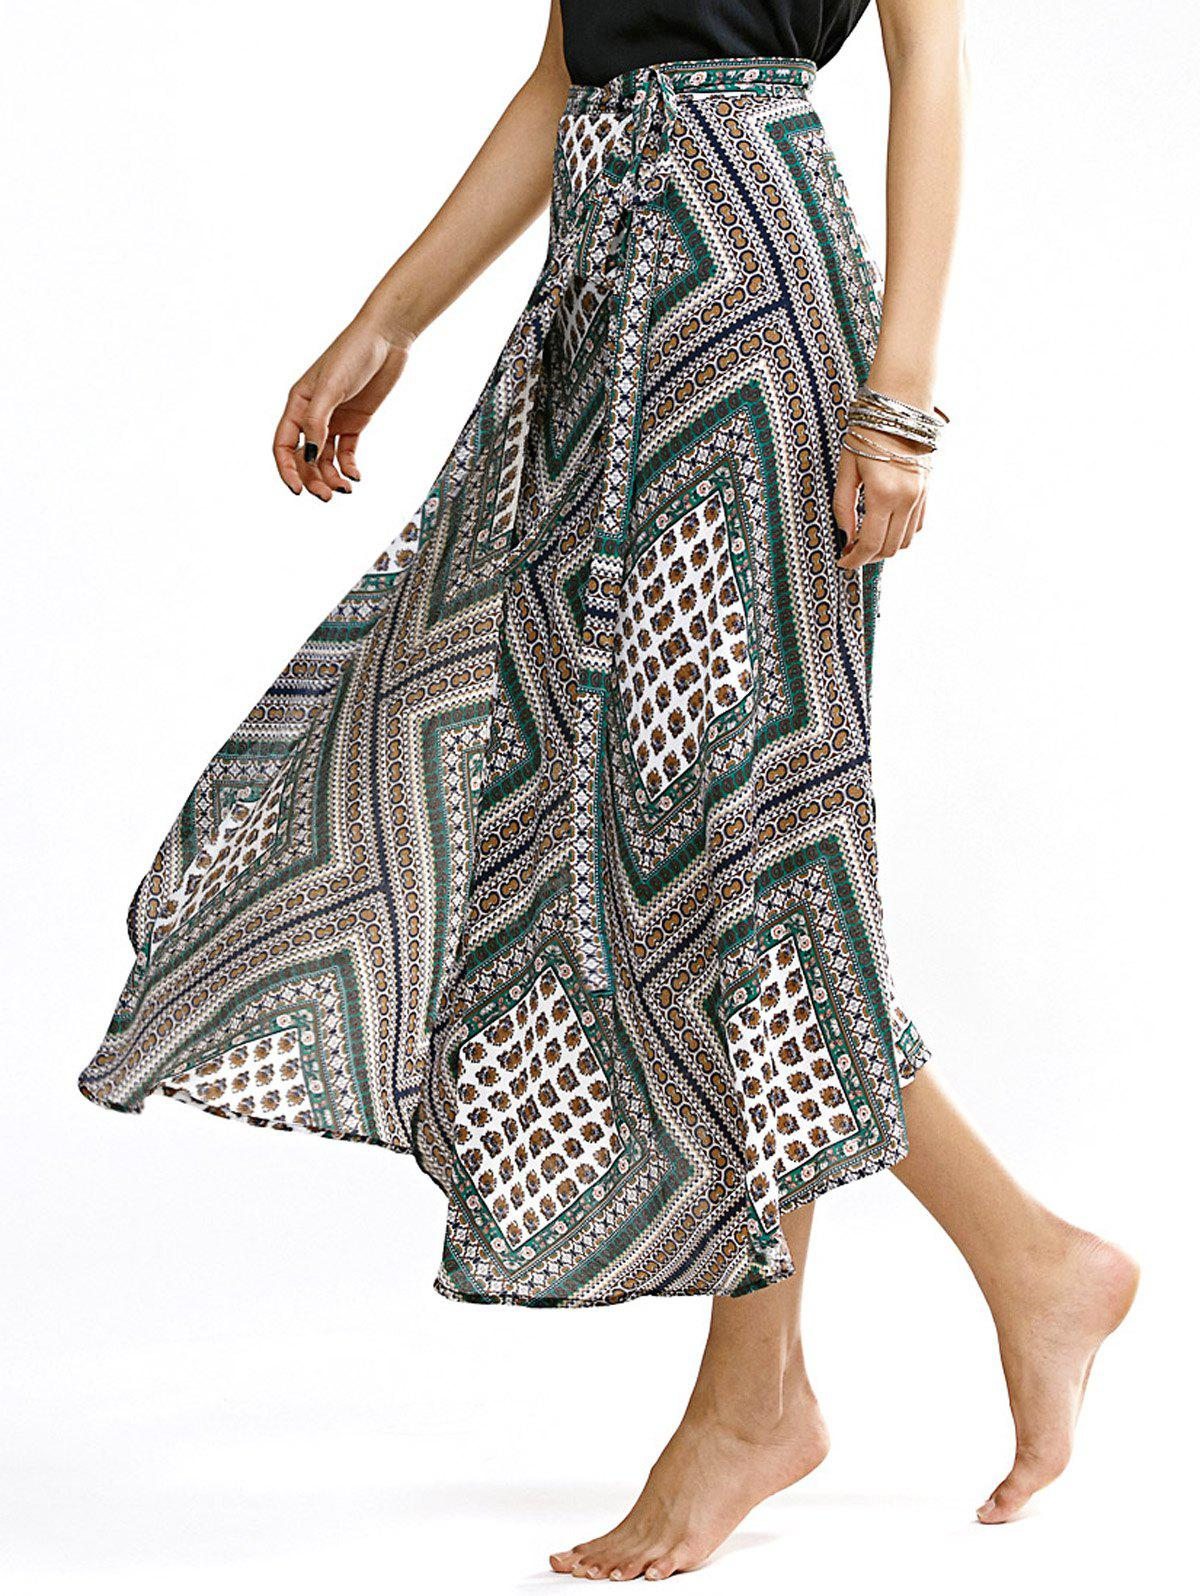 Retro Style High Waist Printed Wrap Skirt For Women - COLORMIX ONE SIZE(FIT SIZE XS TO M)